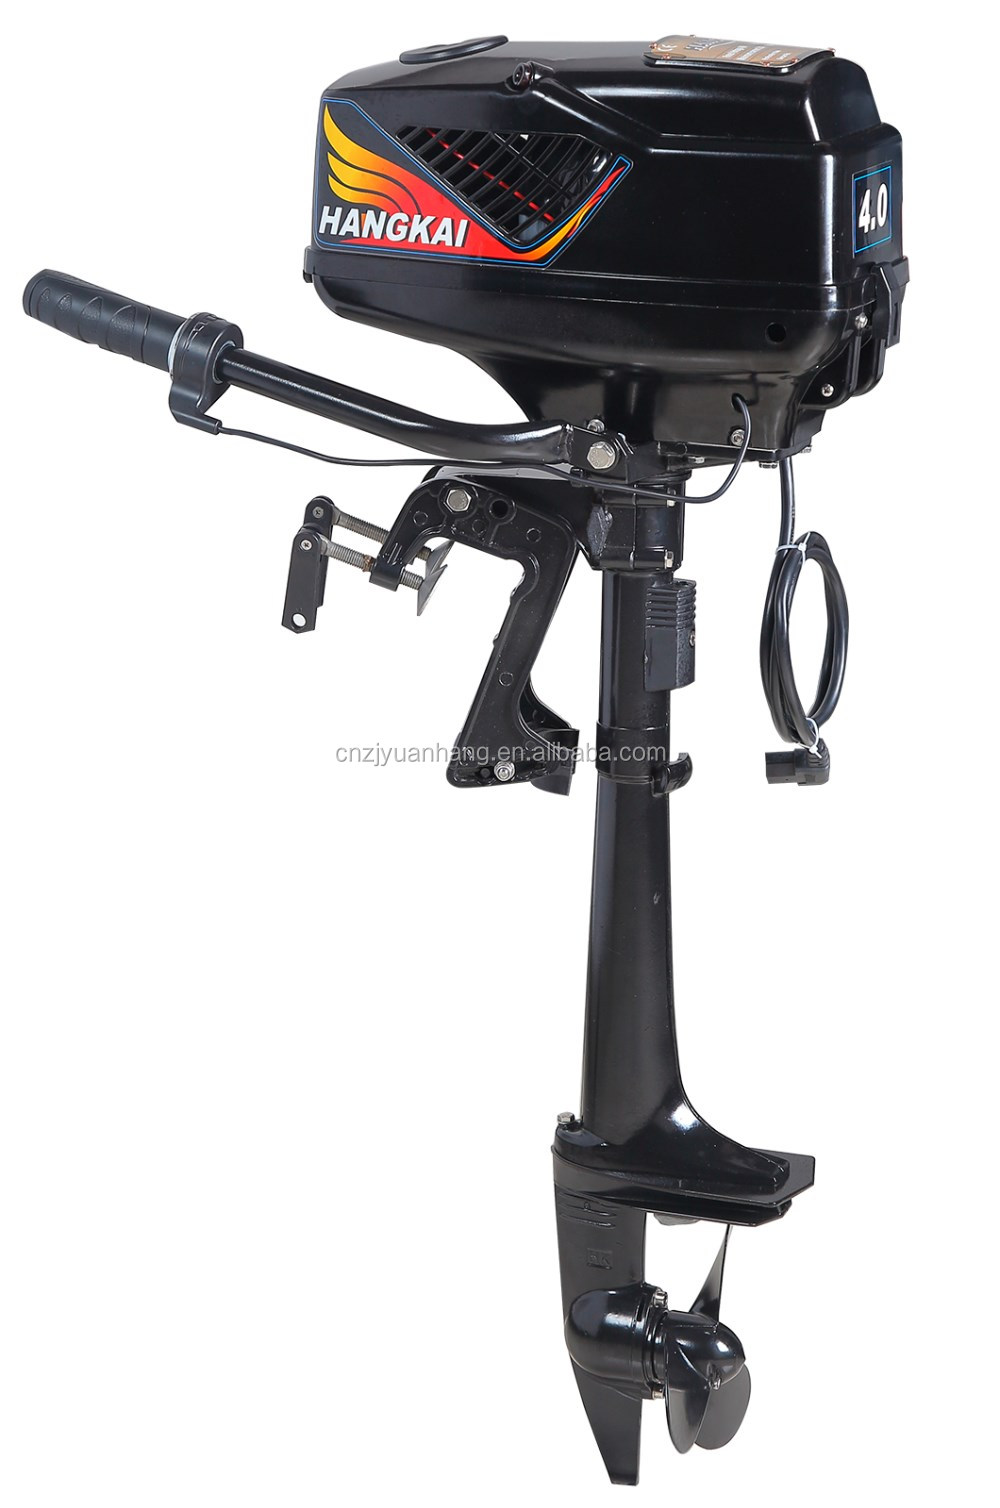 China 1000w 48v brushless electric outboard engine for Hangkai 3 5 hp outboard motor manual